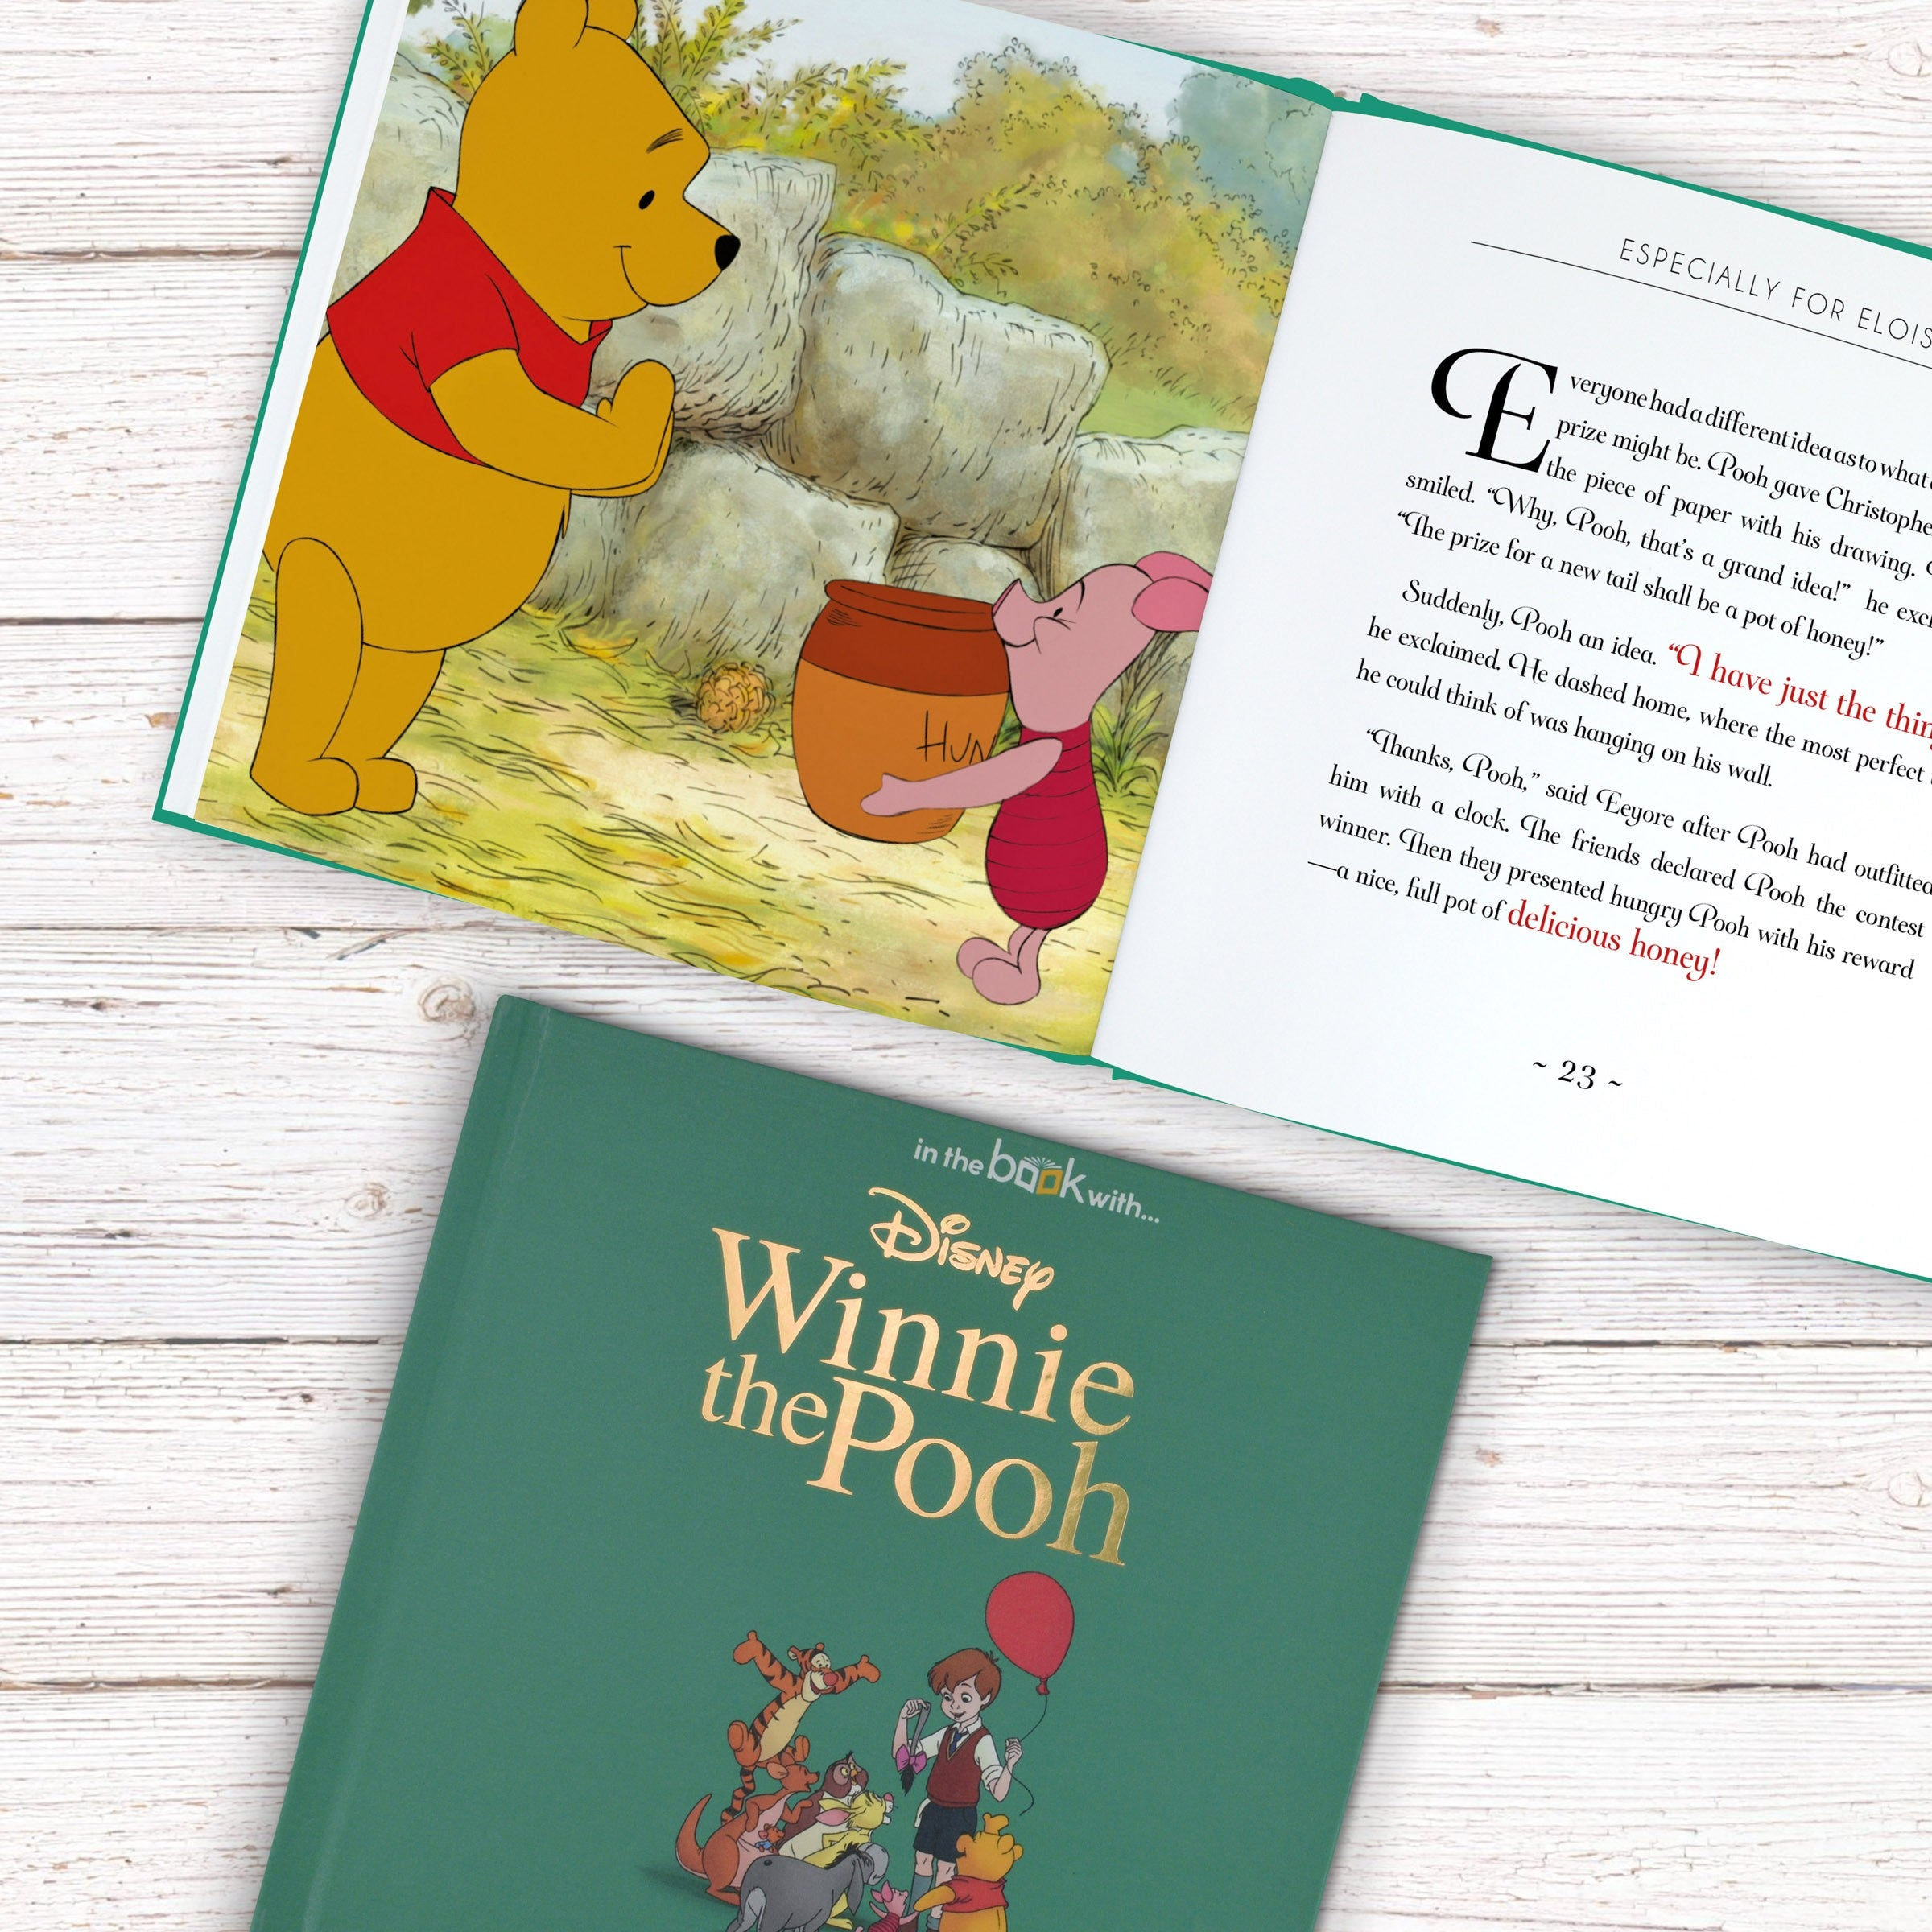 Personalised Children Book Timeless Disney Winnie the Pooh Hardback Gift Boxed